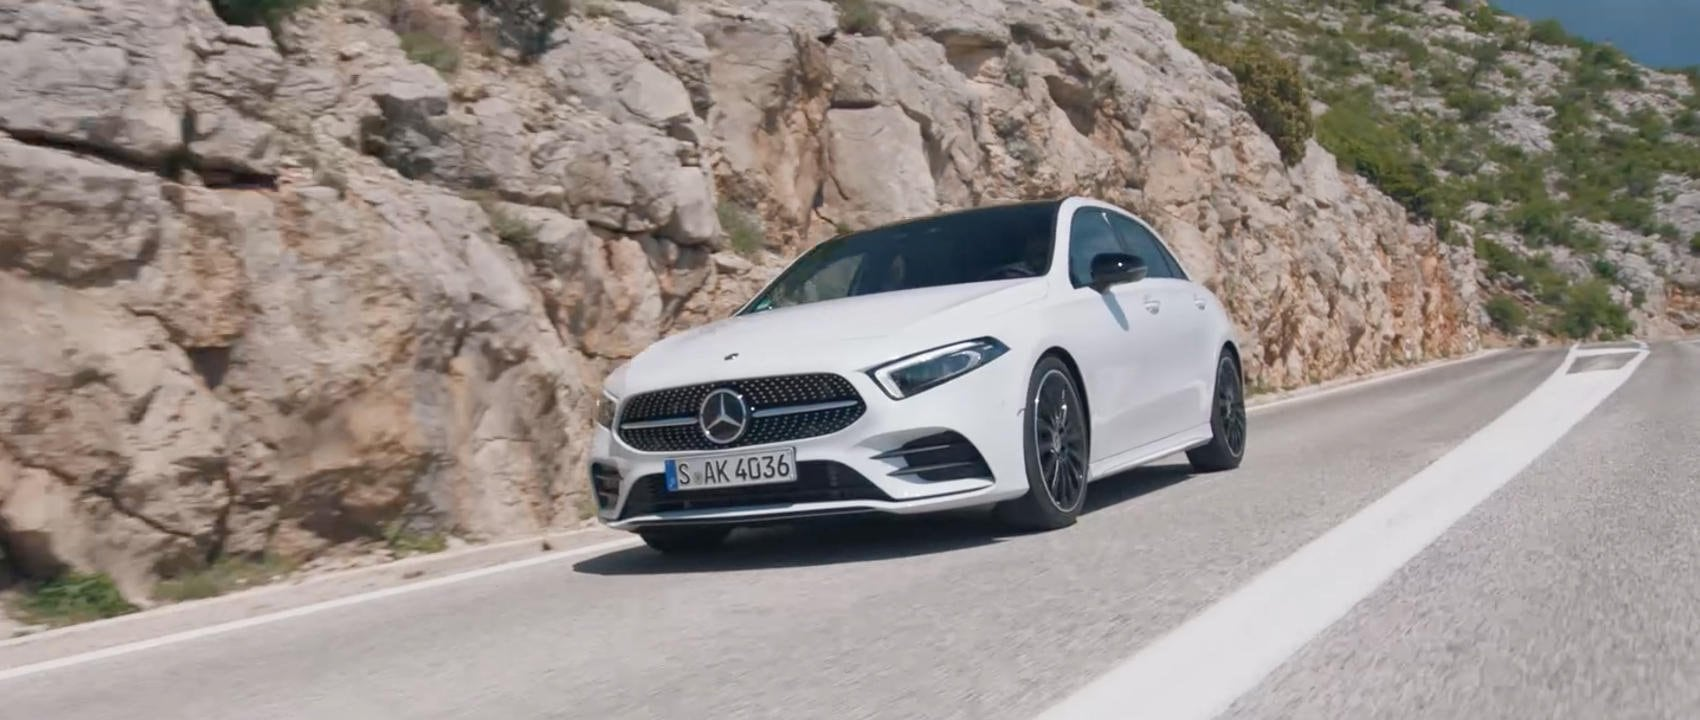 Car expert and YouTube pro MrJWW trials the driving dynamics, comfort and power of the new A-Class.